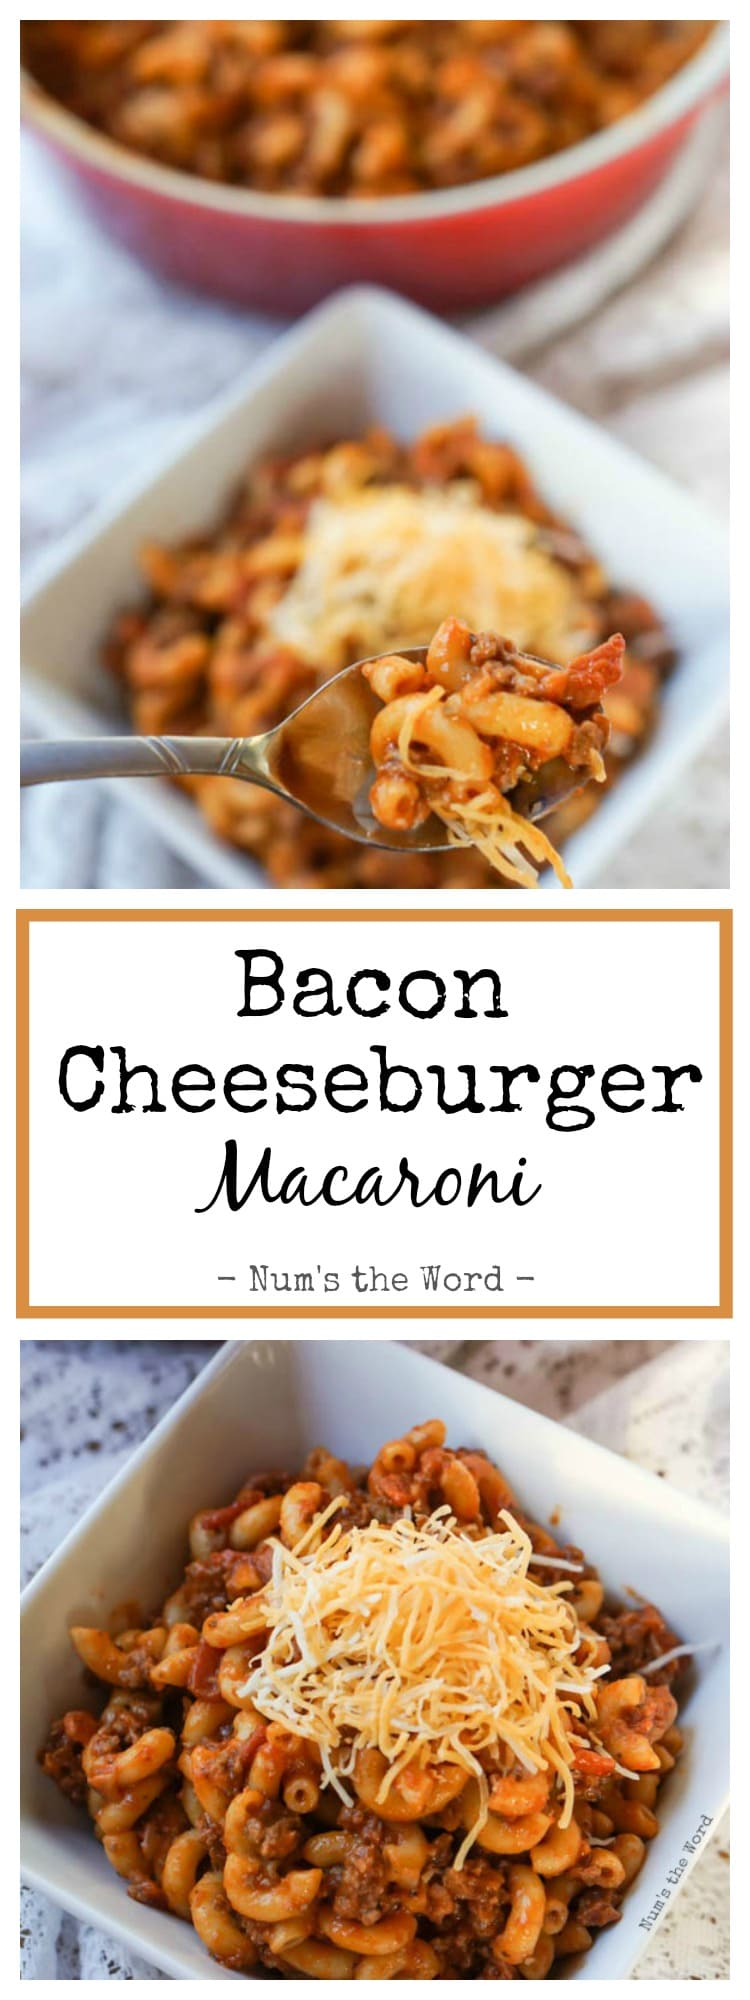 Bacon Cheeseburger Macaroni, will quickly become a staple in your home ...